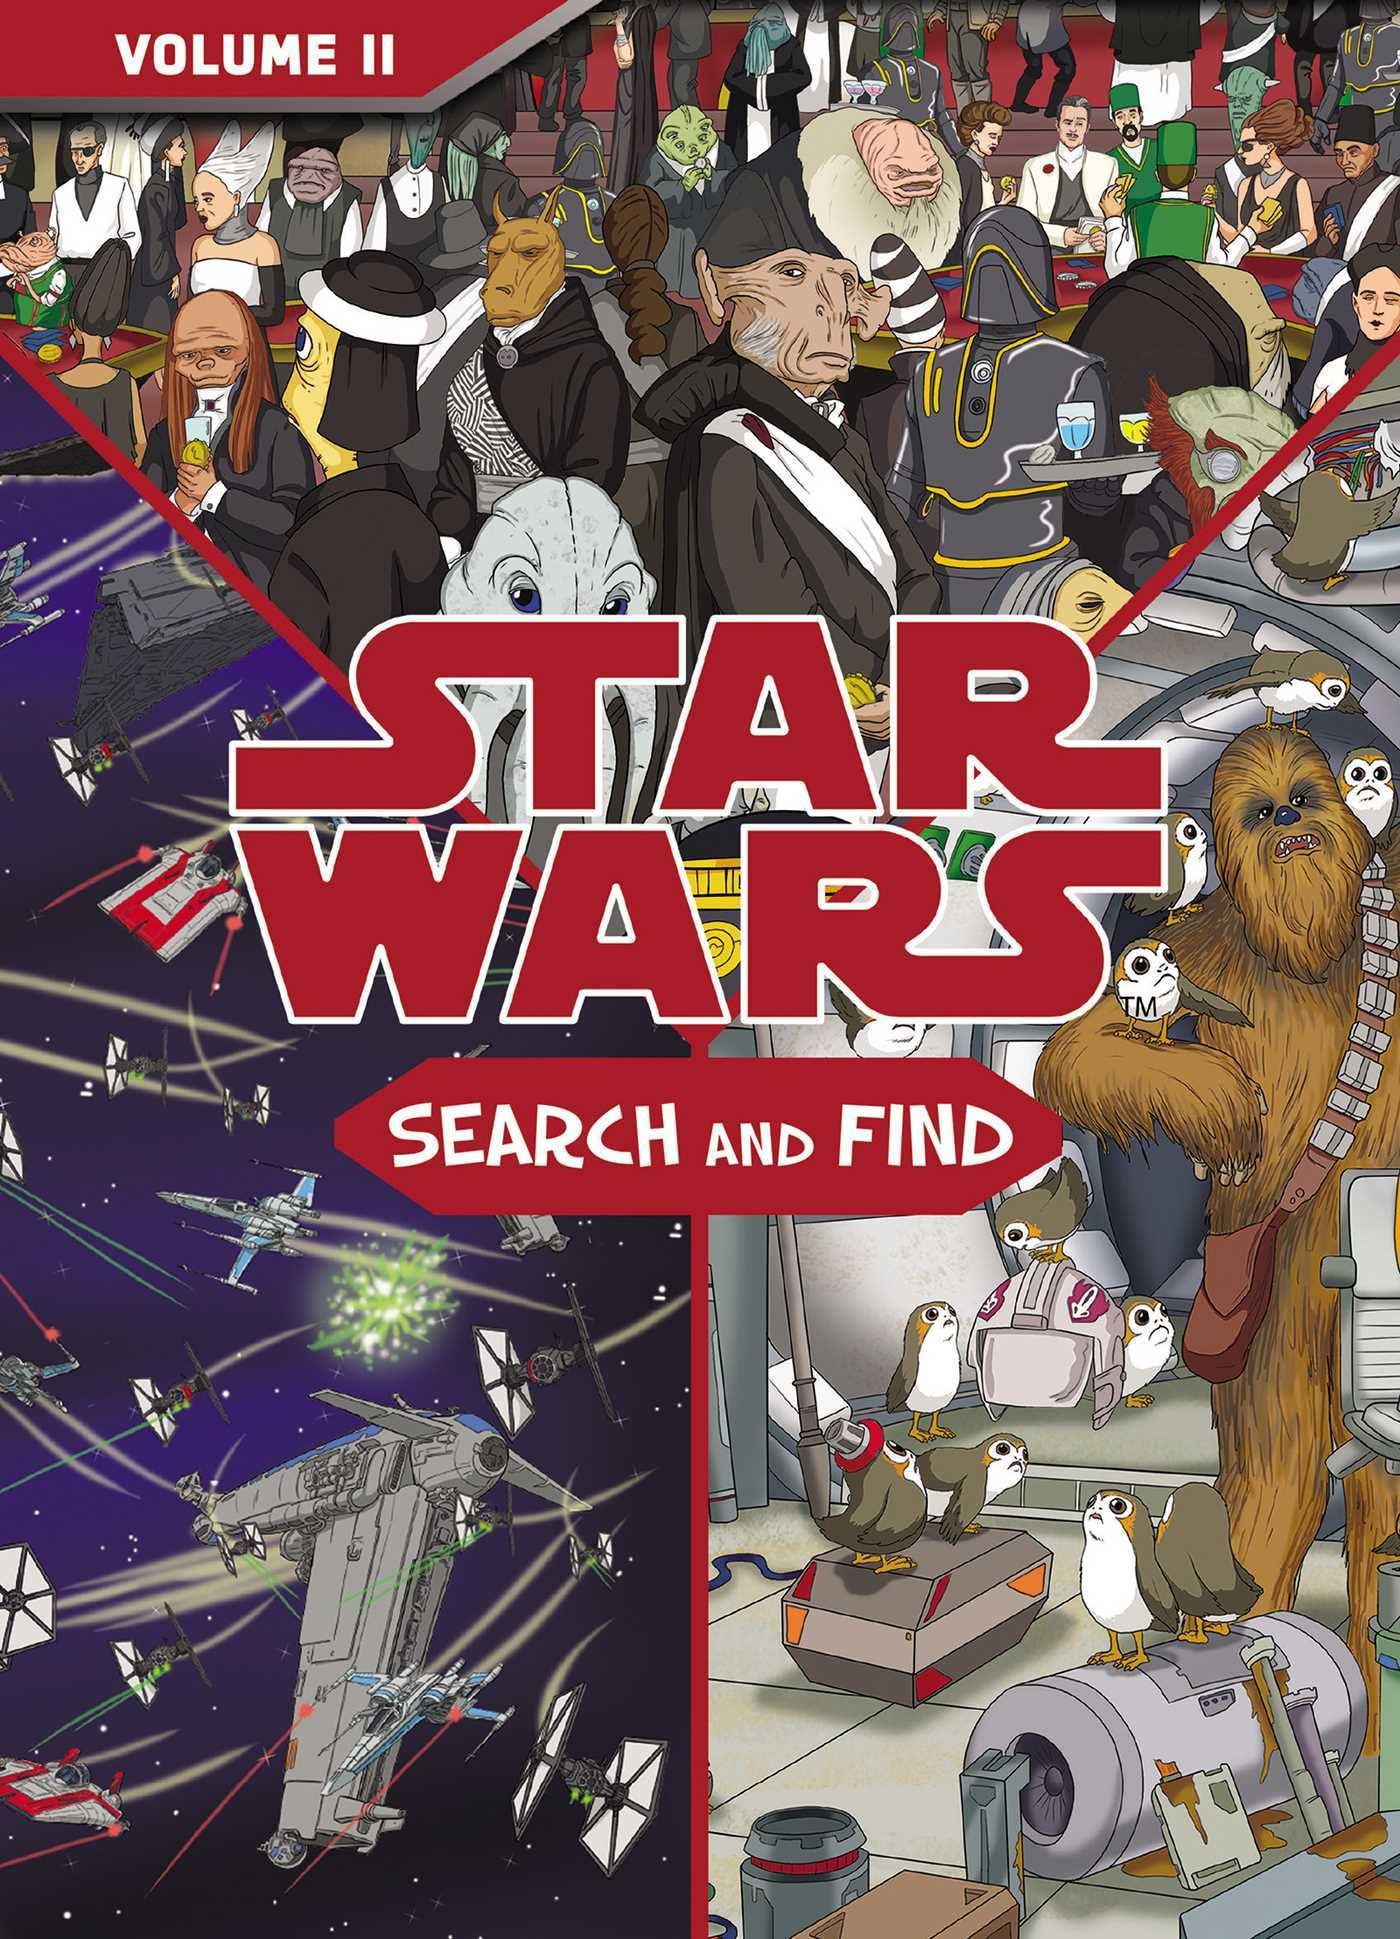 Star Wars: The Last Jedi Search and Find